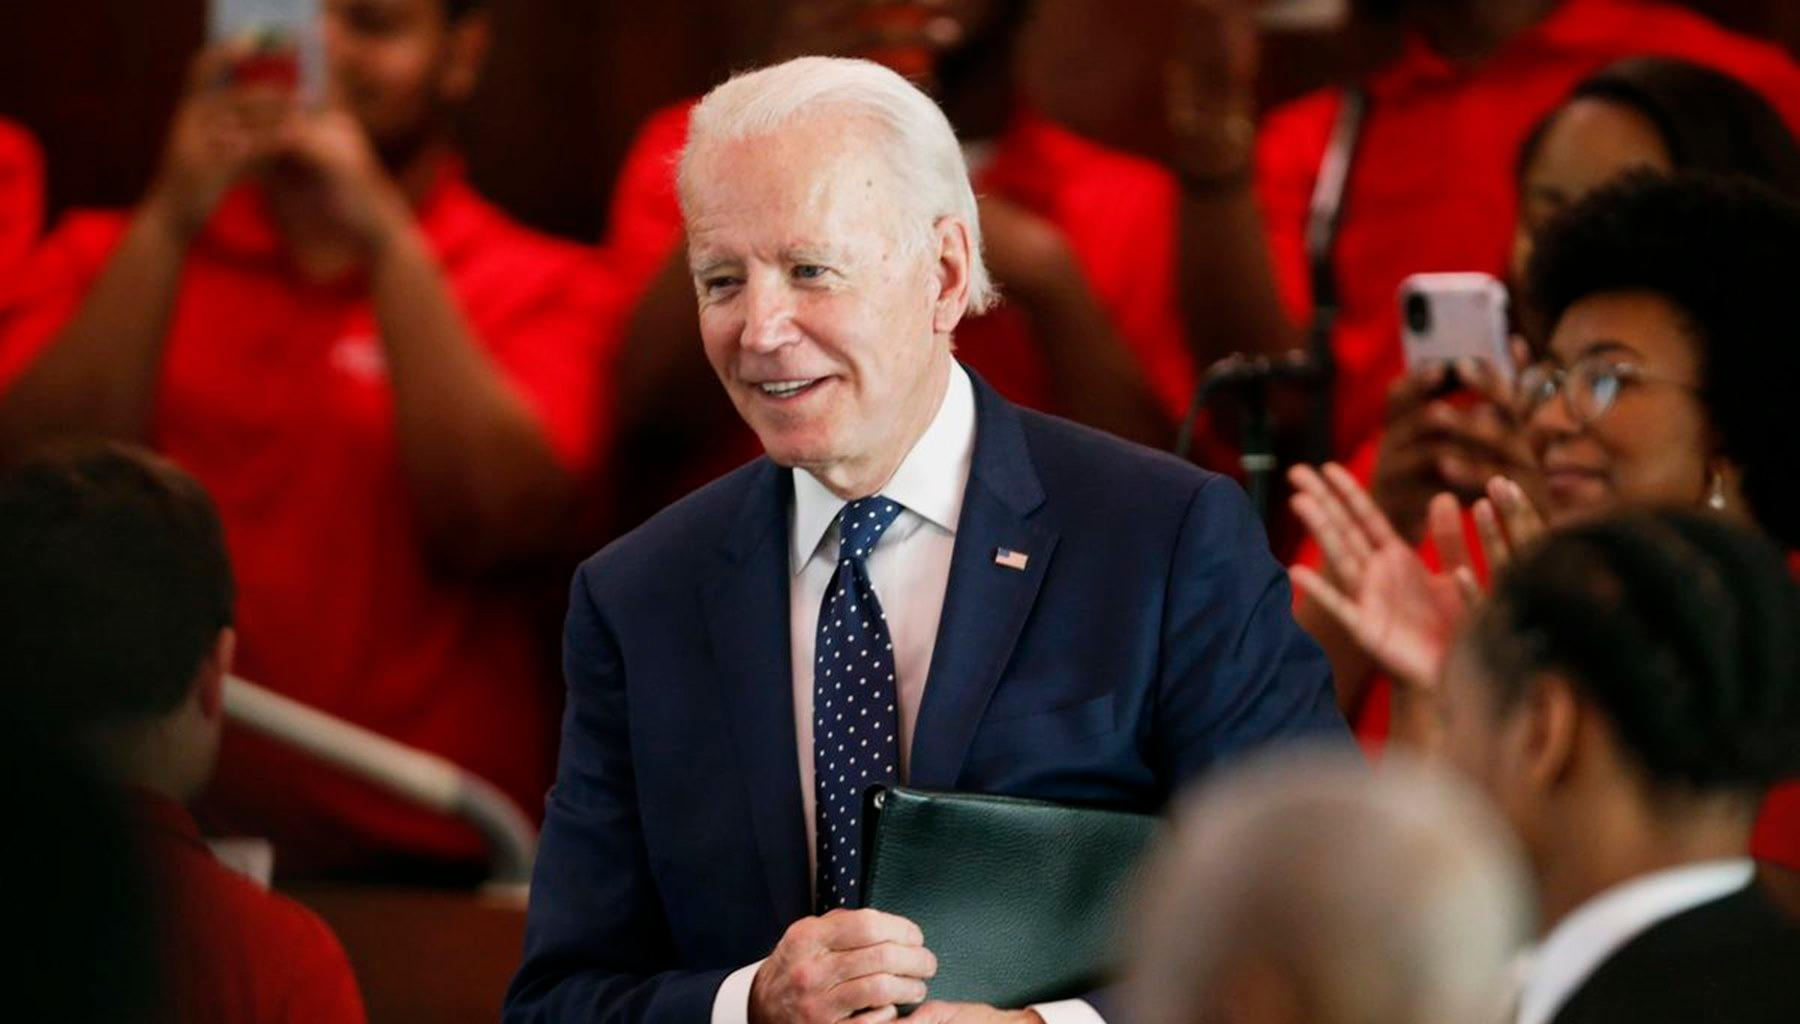 Joe Biden Has Enlisted Barack Obama To Help Him Make This Very Important Decision